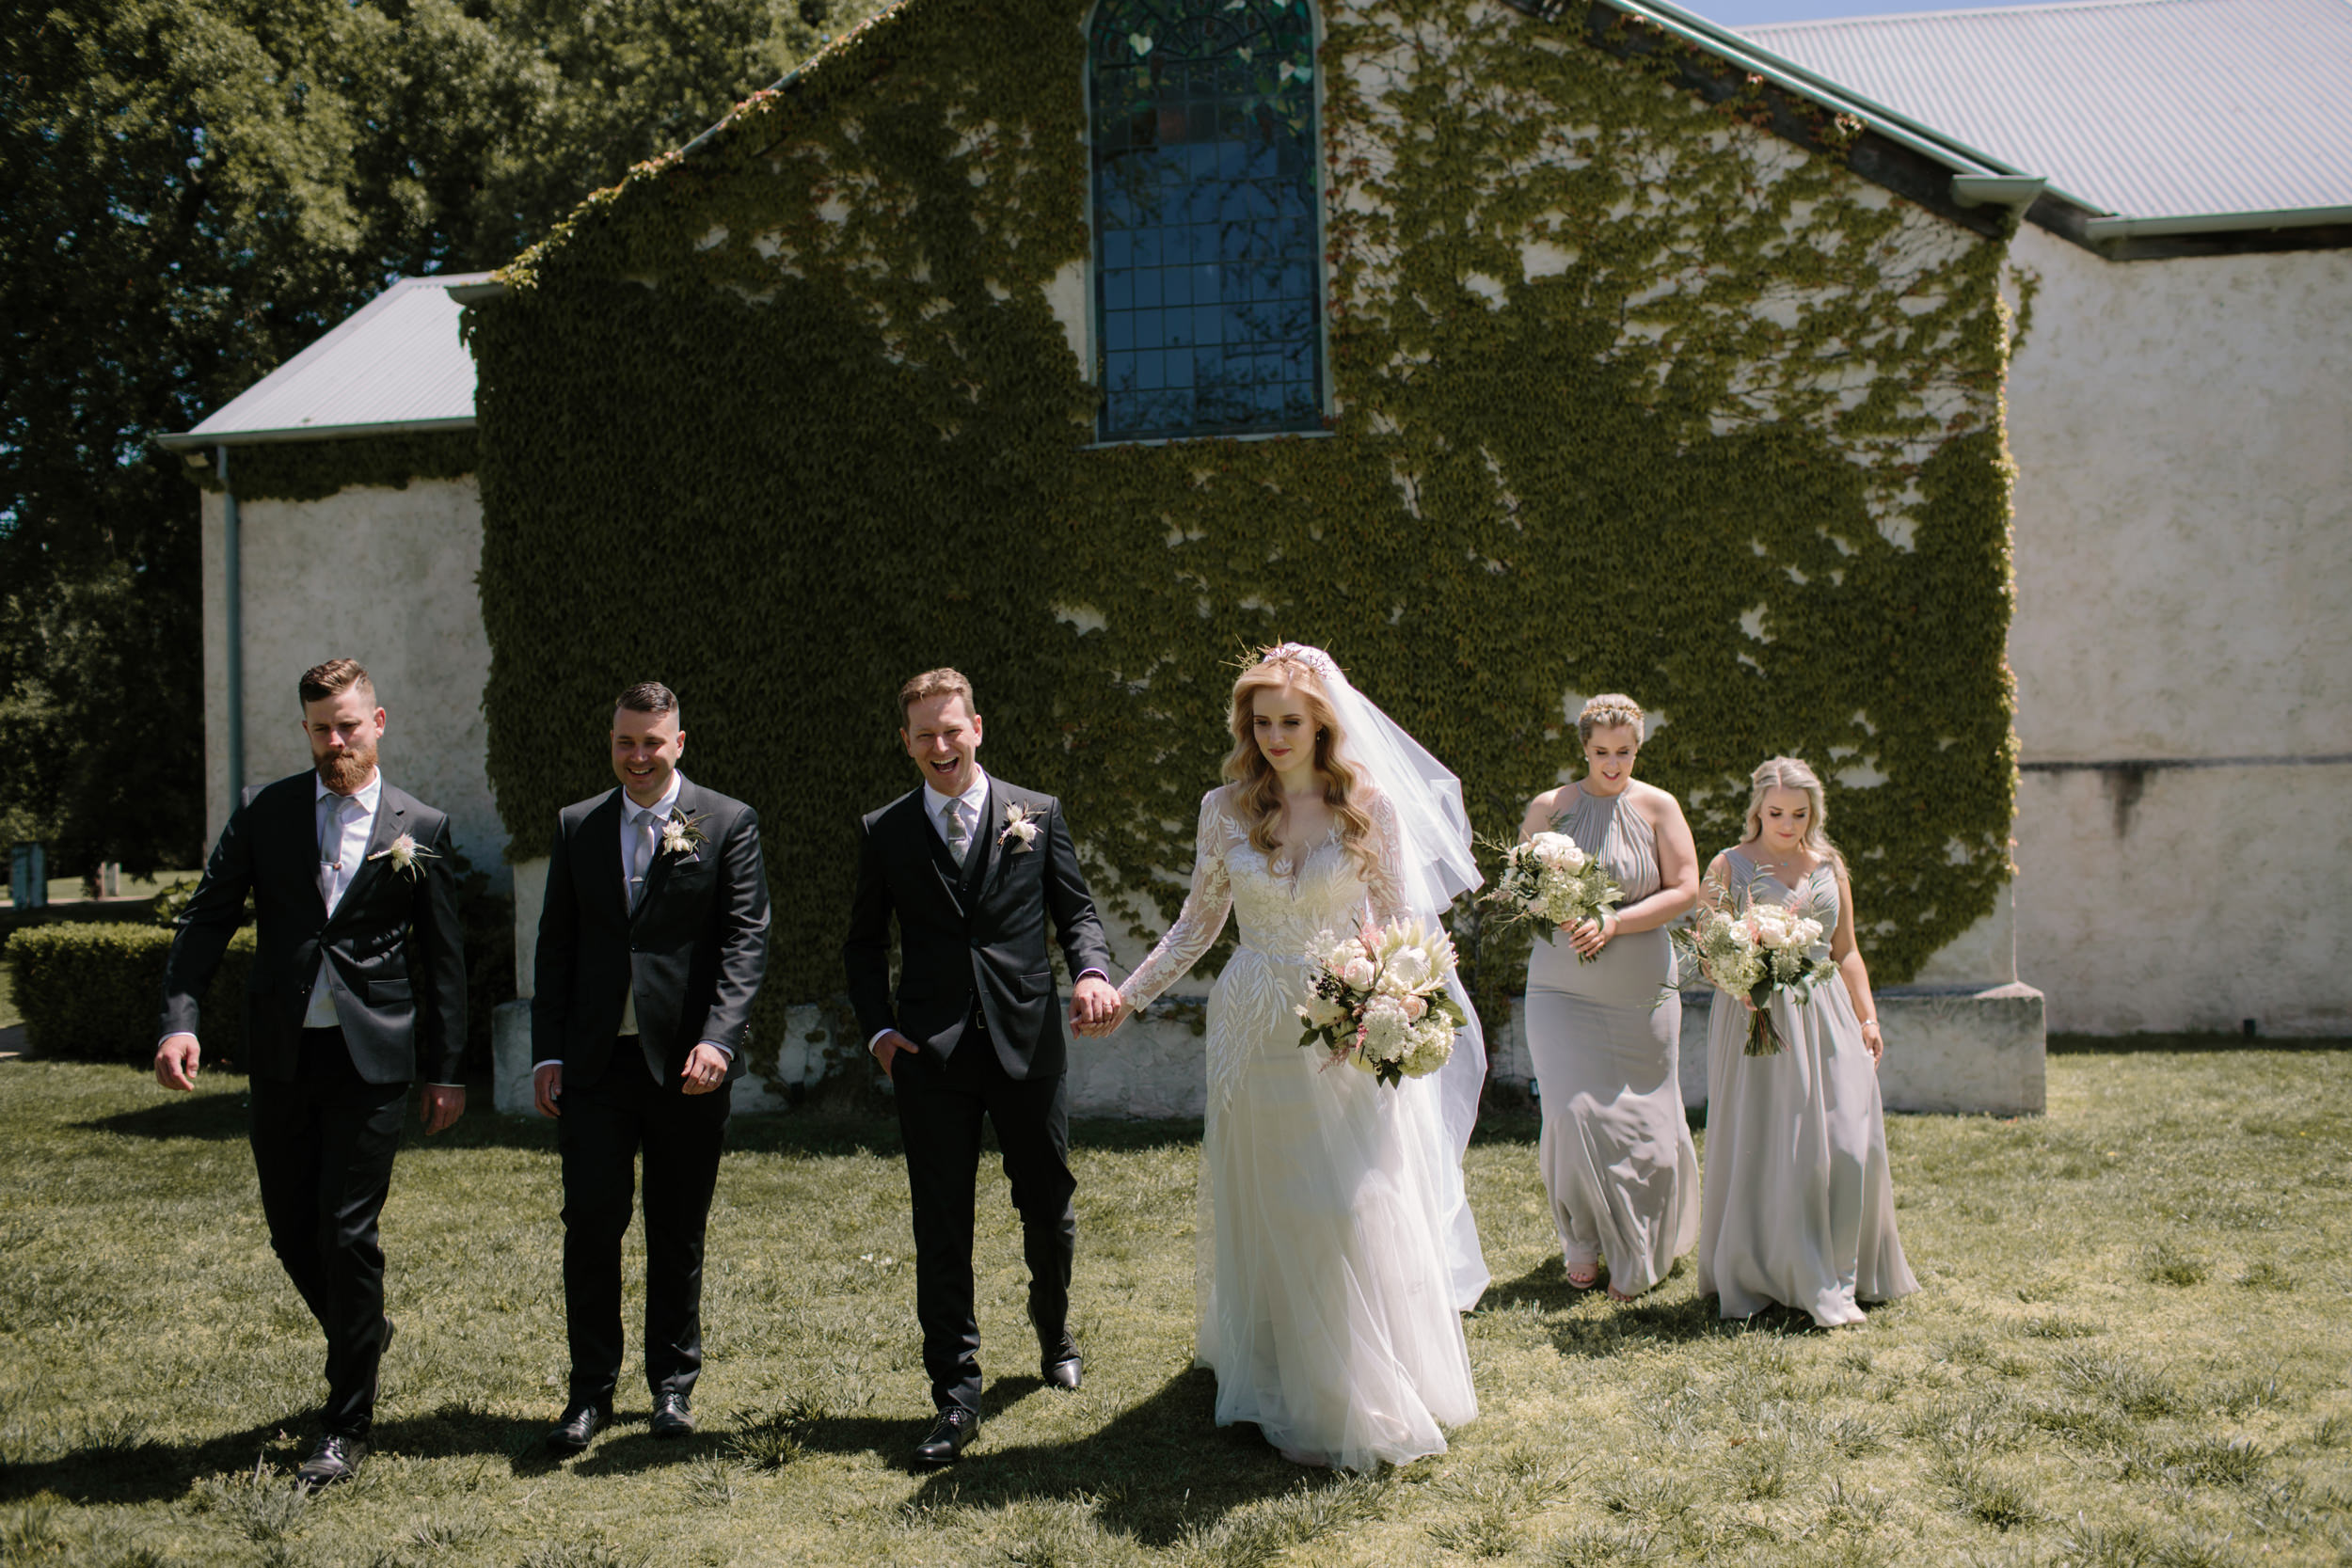 I-Got-You-Babe-&.Co.-Stones-of-the-Yarra-Valley-Wedding-Beverly-Ross0122.JPG